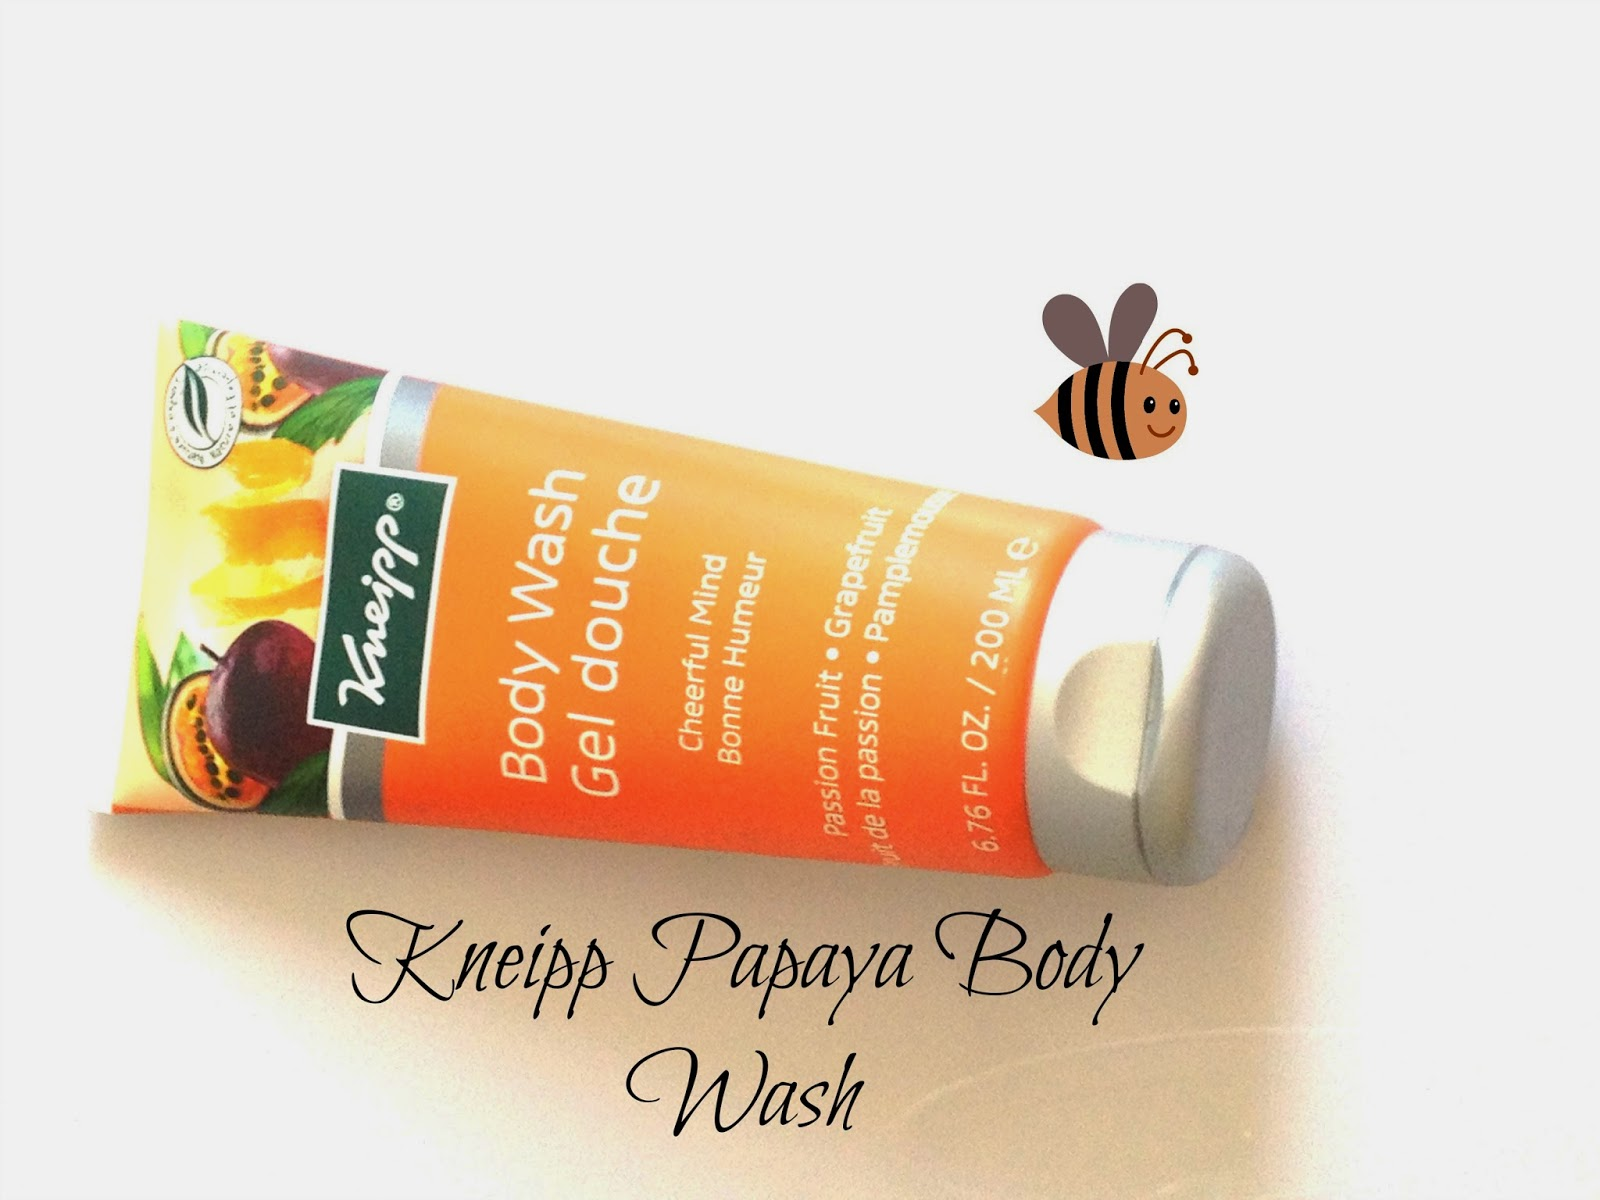 Kneipp Papaya Body Wash Reviews